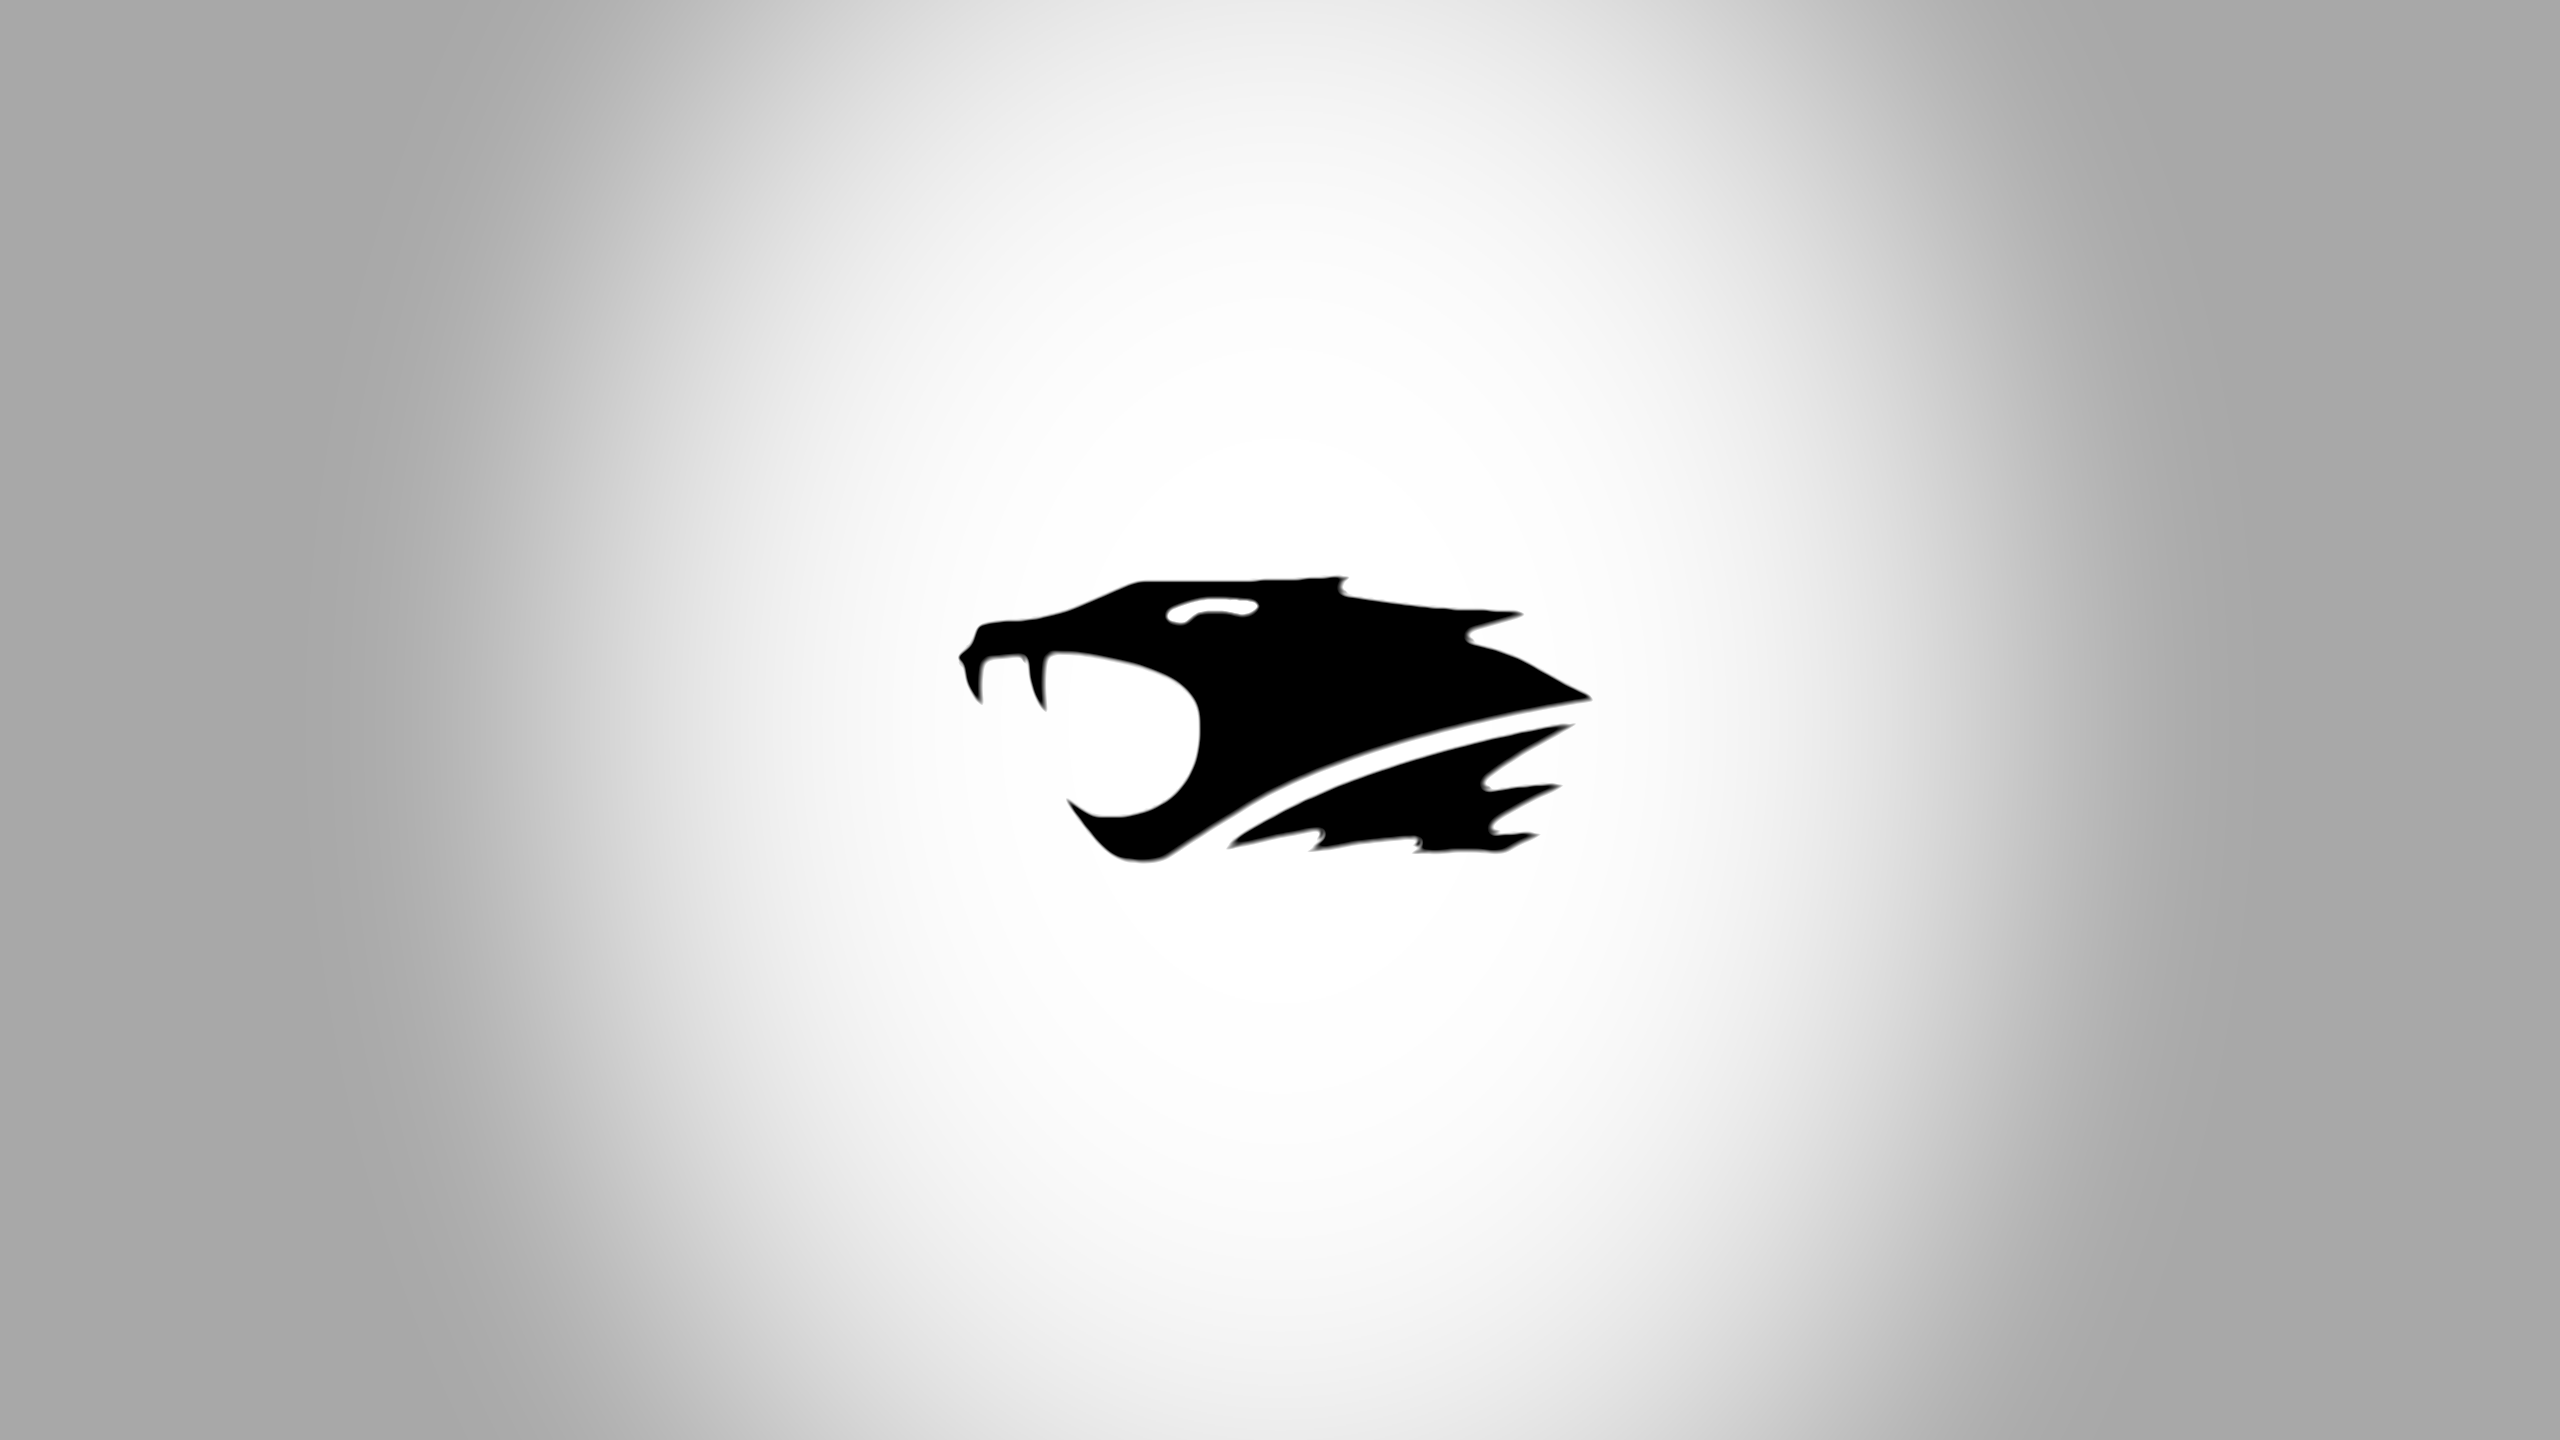 Ibuypower black wallpaper 2560x1440 by sawyerthebest on for Where can i purchase wallpaper